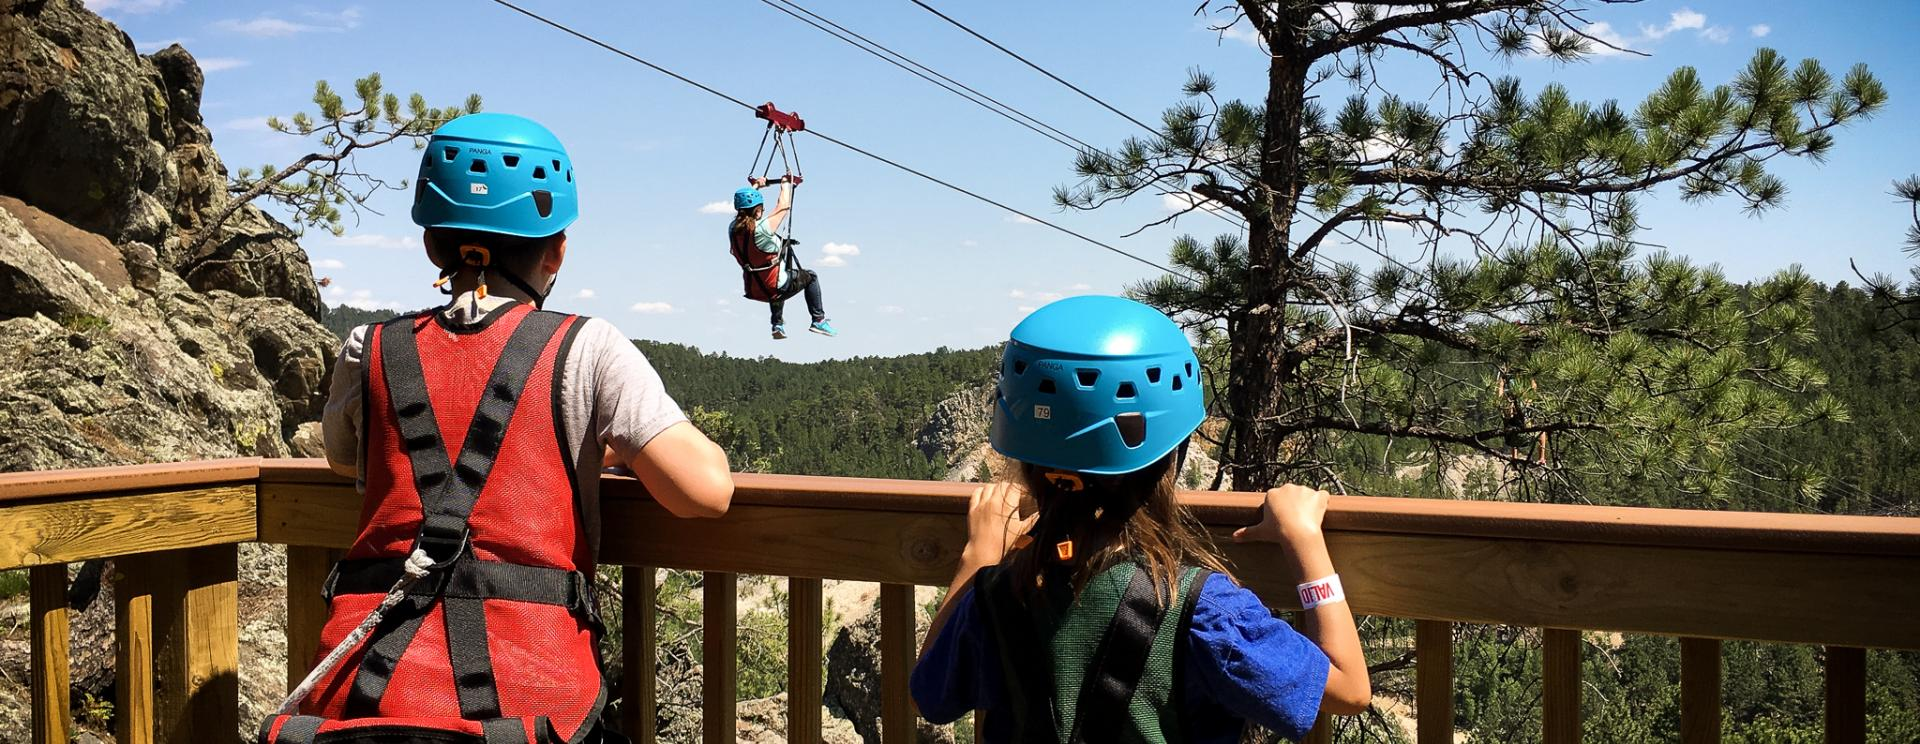 Up into the Tree Tops: Part 2 - The Pinnacle Zip Tour